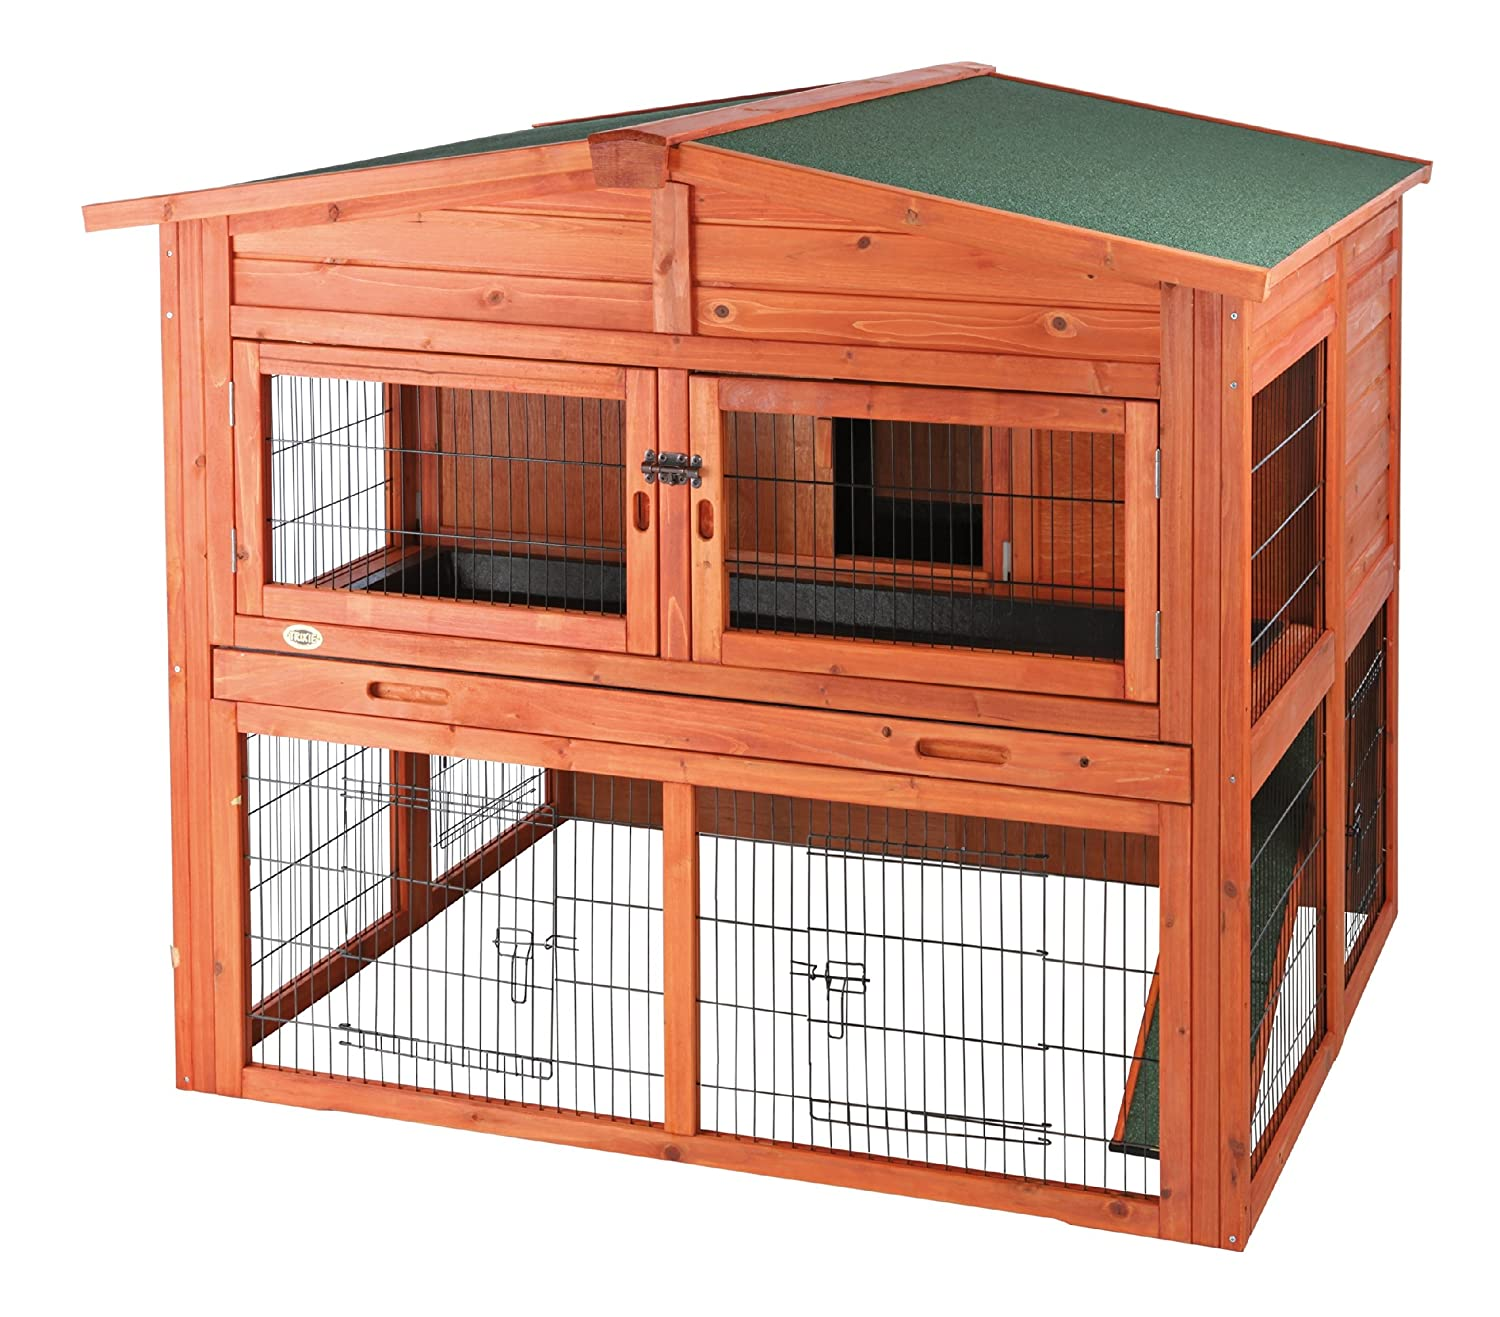 TRIXIE 2-Story Rabbit Hutch With Attic - Extra Large